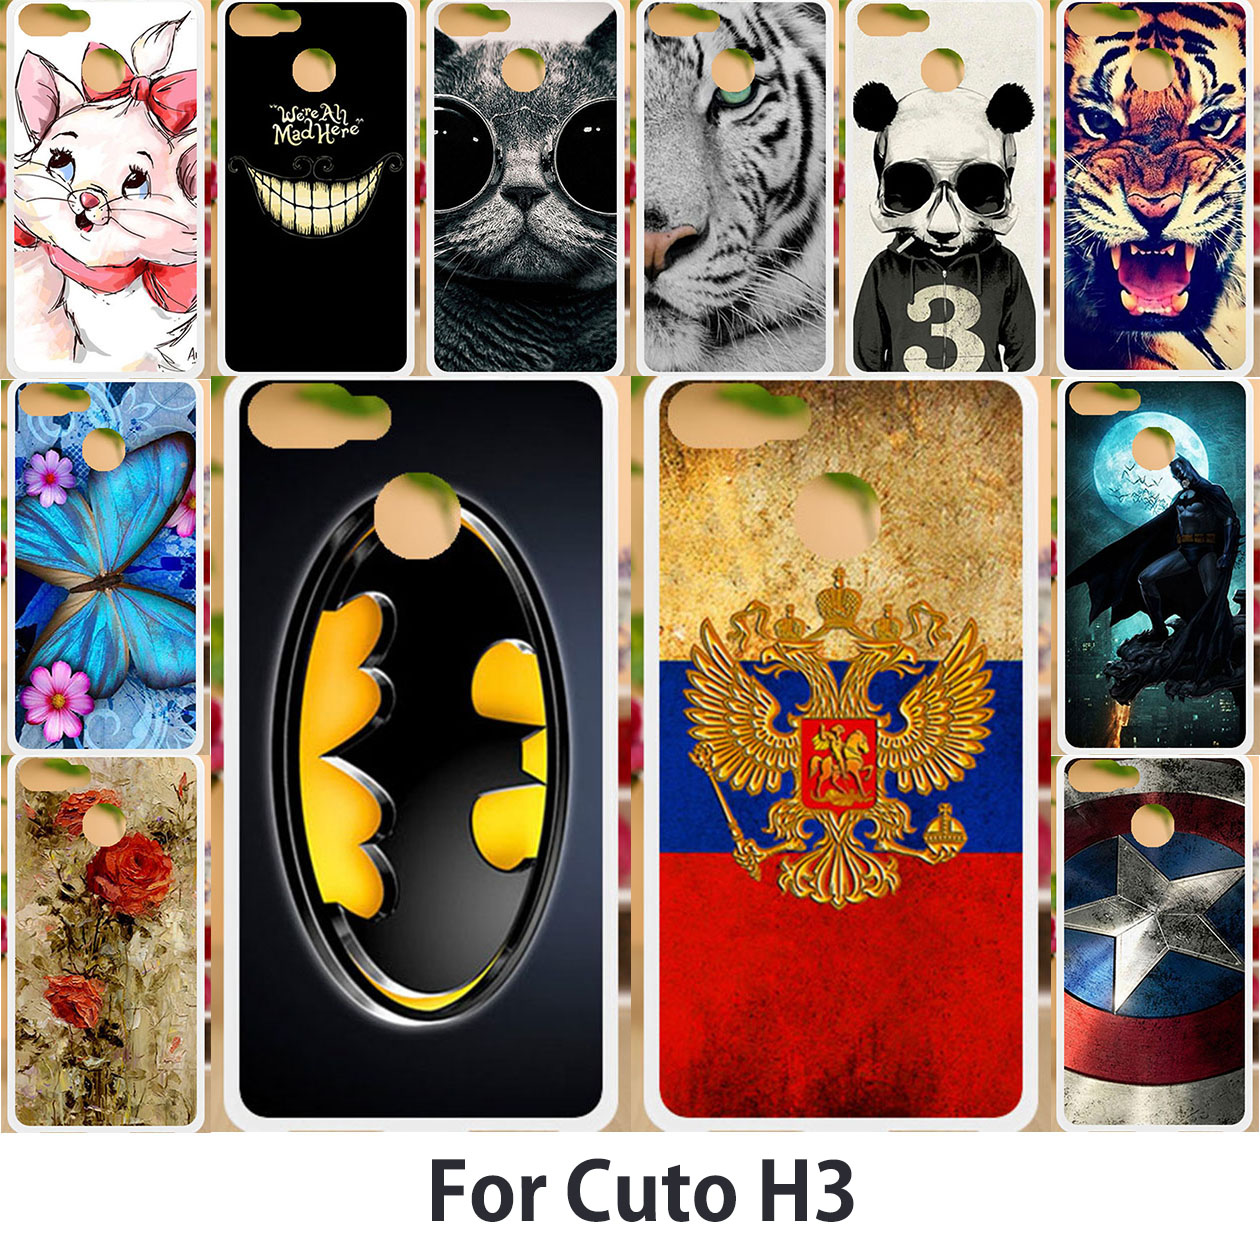 Phone Cases For Cubot H3 Case Cubot Rainbow 2 Cases Cubot R9 R11 X15 X18 Plus Z100 Magic Manito Max H2 Echo Note Plus Covers(China)